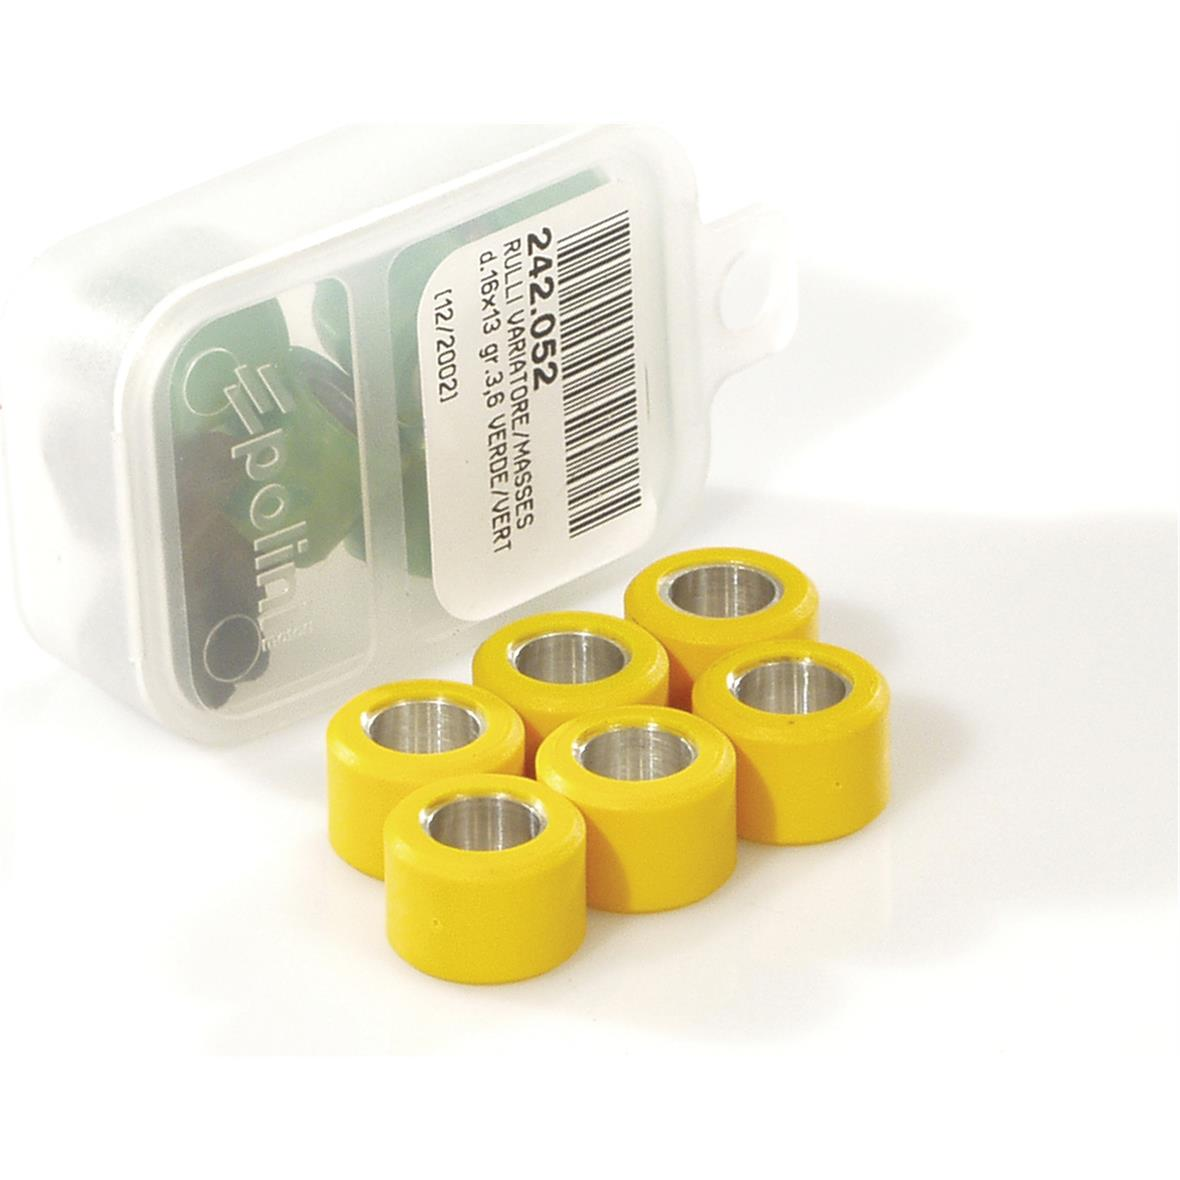 Product Image for 'Variator Rollers POLINI 20x12 mm 14,1gTitle'